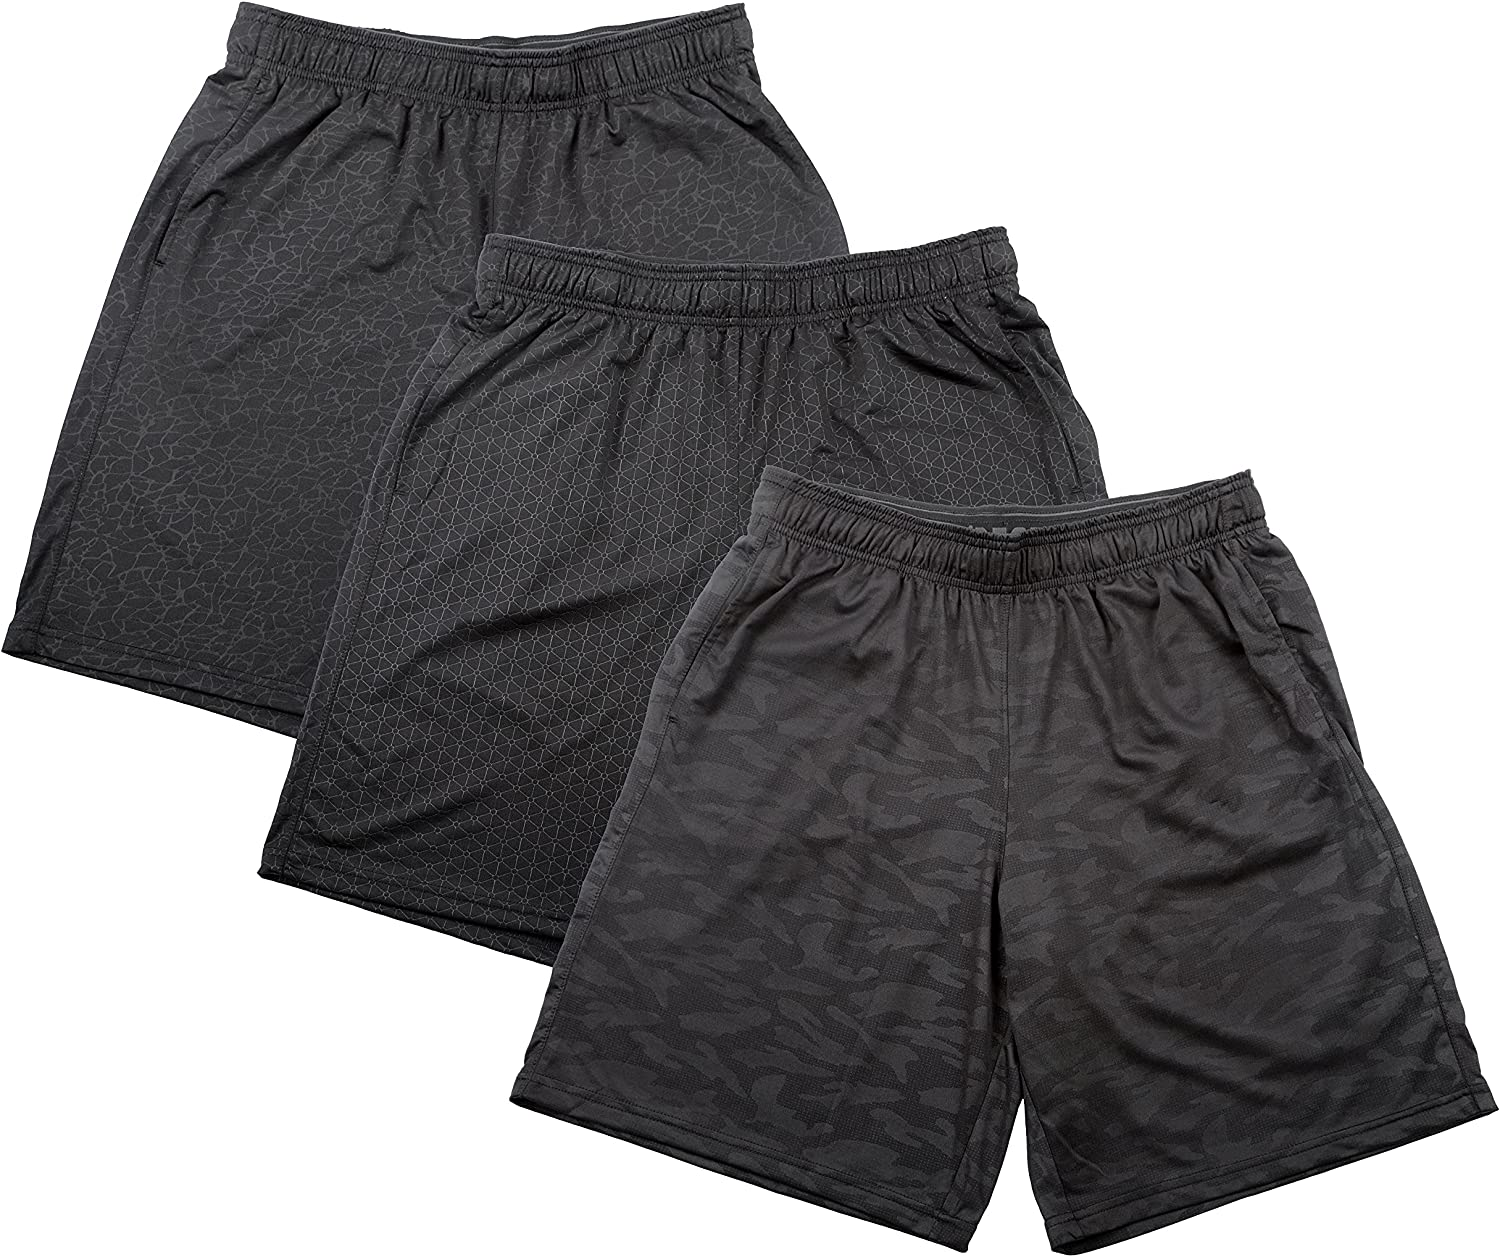 90 Degree By Sale SALE% OFF Reflex Mens Basketball Seattle Mall Pac Shorts 3 with Drawstring